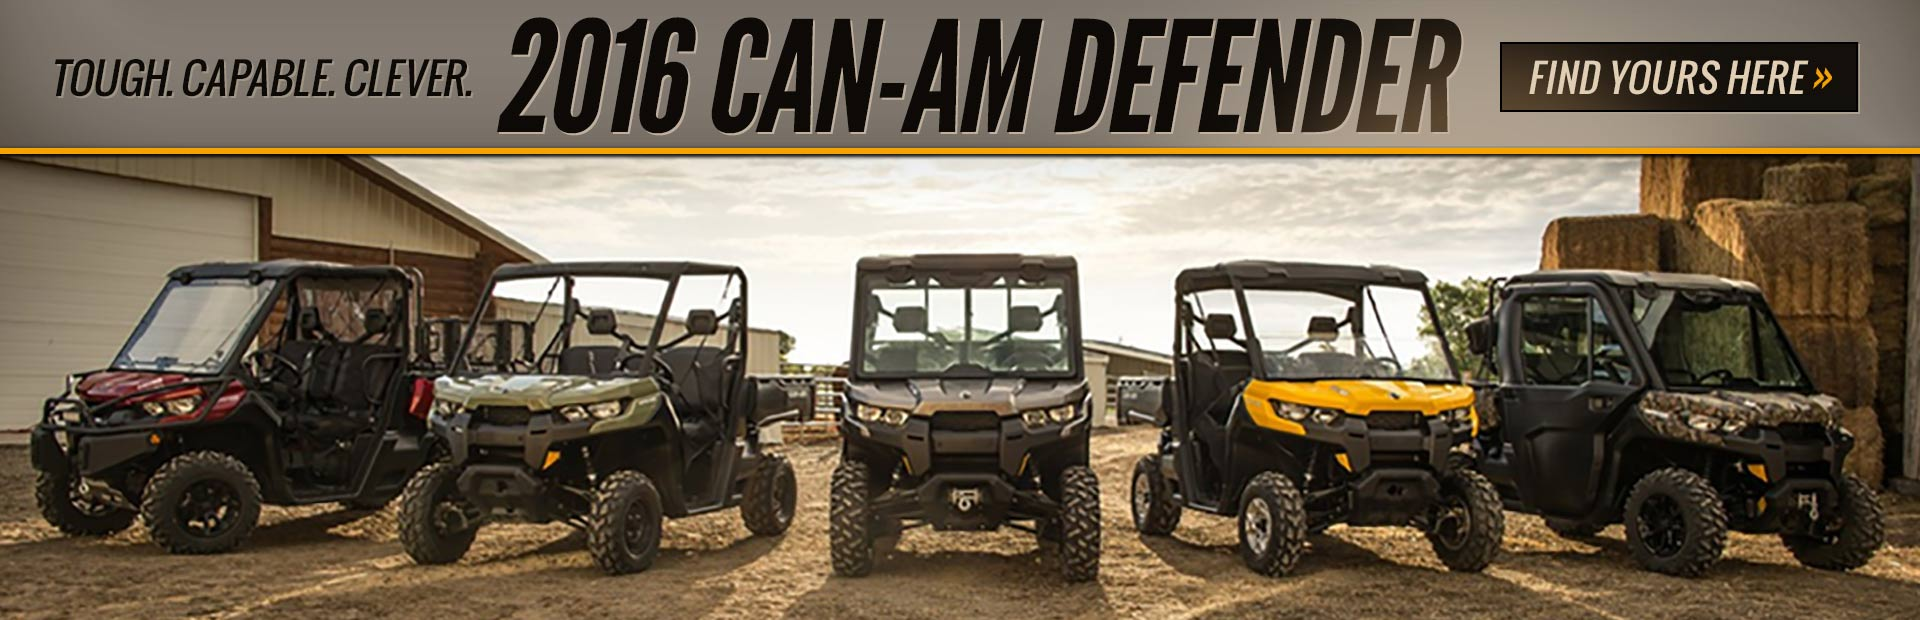 2016 Can-Am Defender Side x Sides: Click here to view the models.